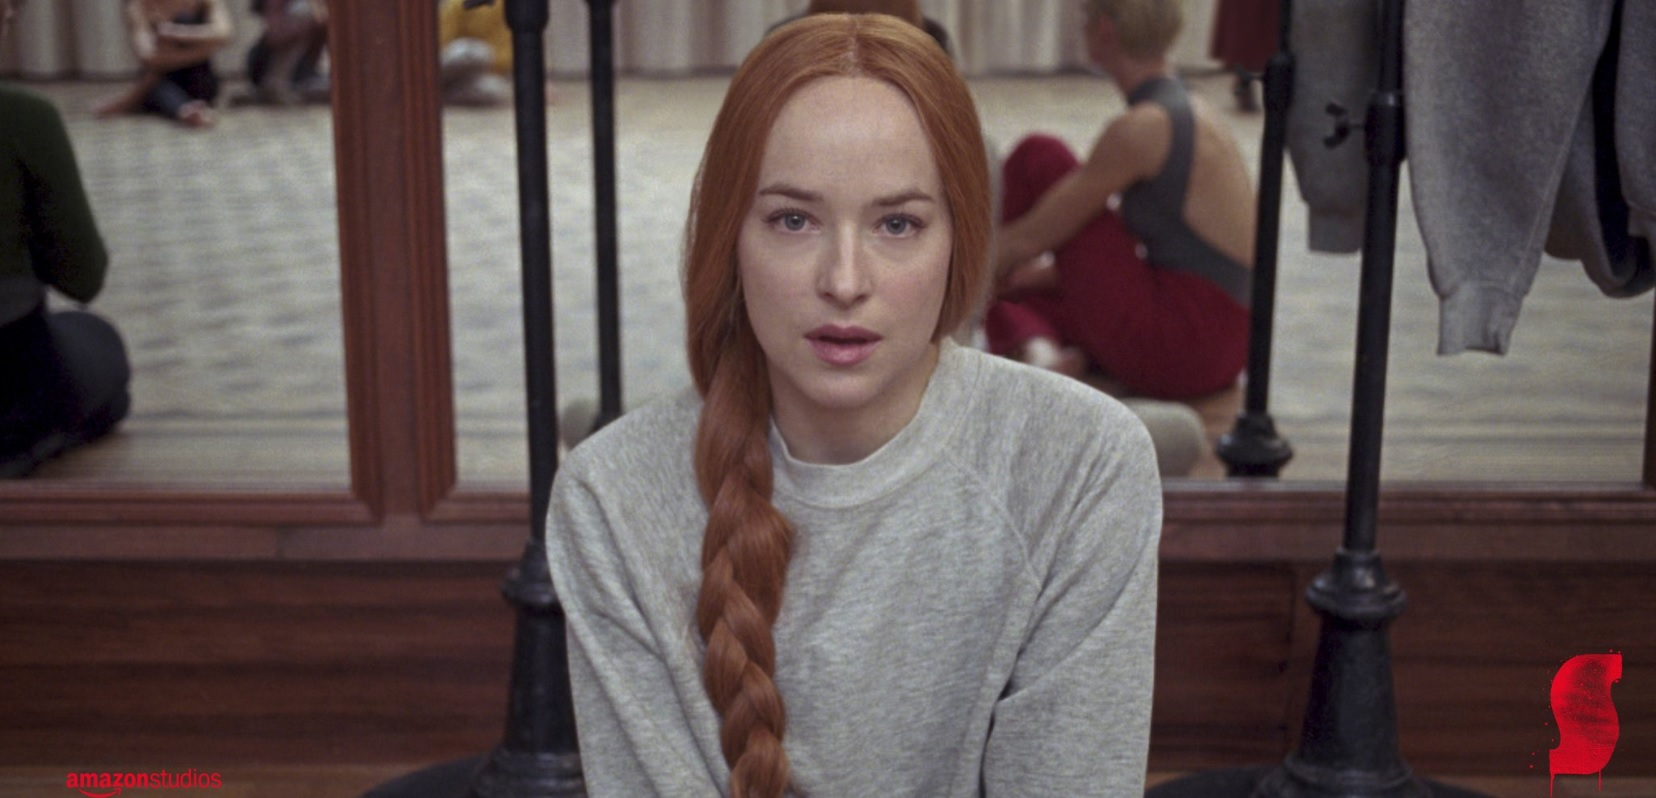 """The 'Suspiria' Remake Has Been Rated R for """"Bloody Images and Graphic Nudity"""" - Bloody Disgusting"""